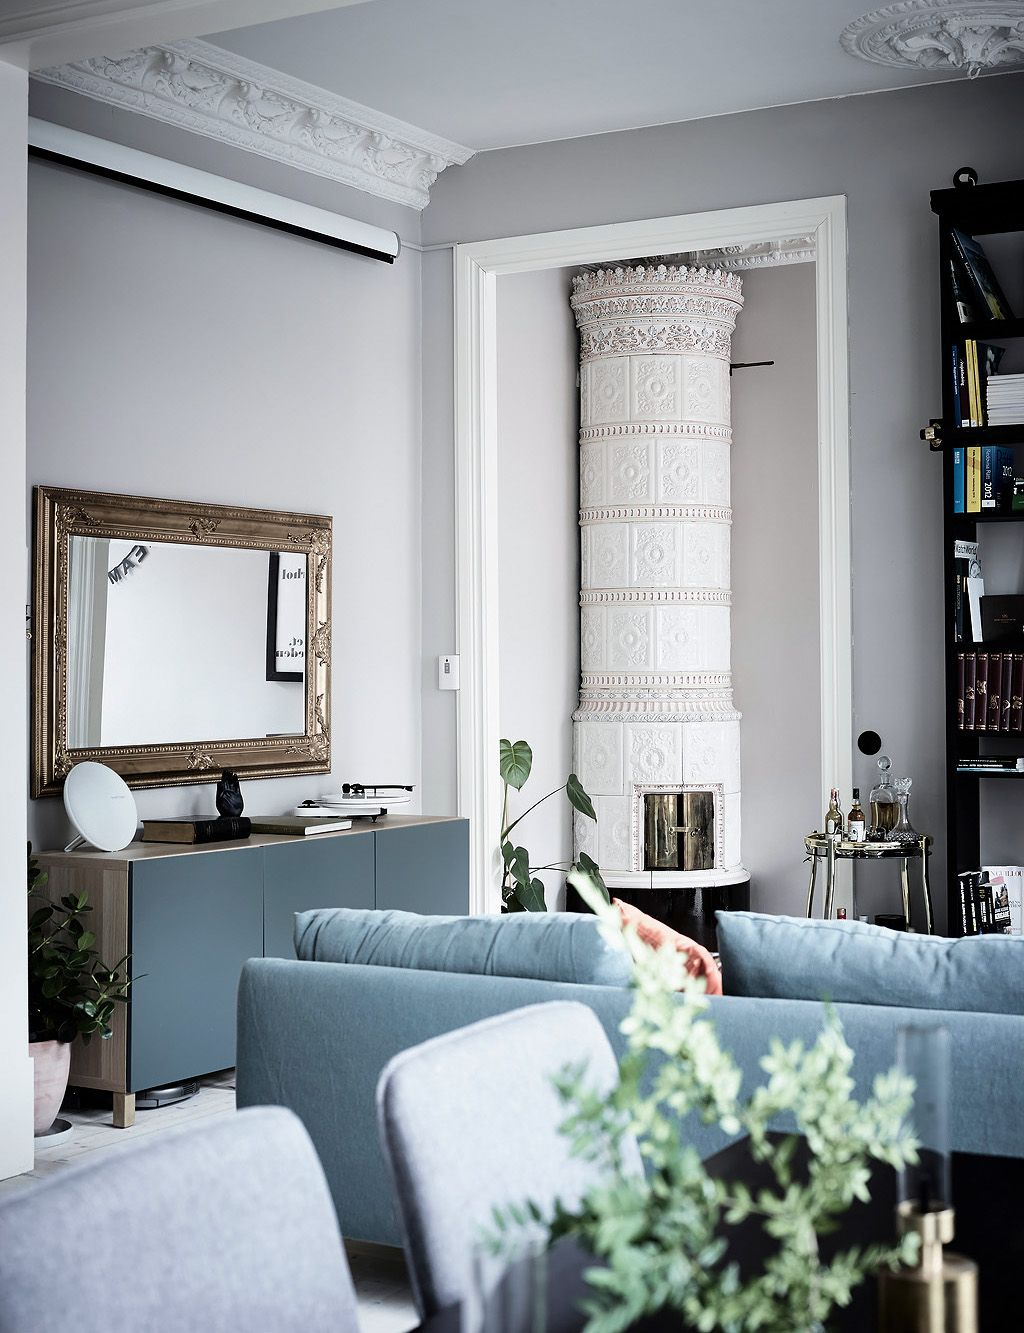 9 ways to make your home look like a luxury hotel